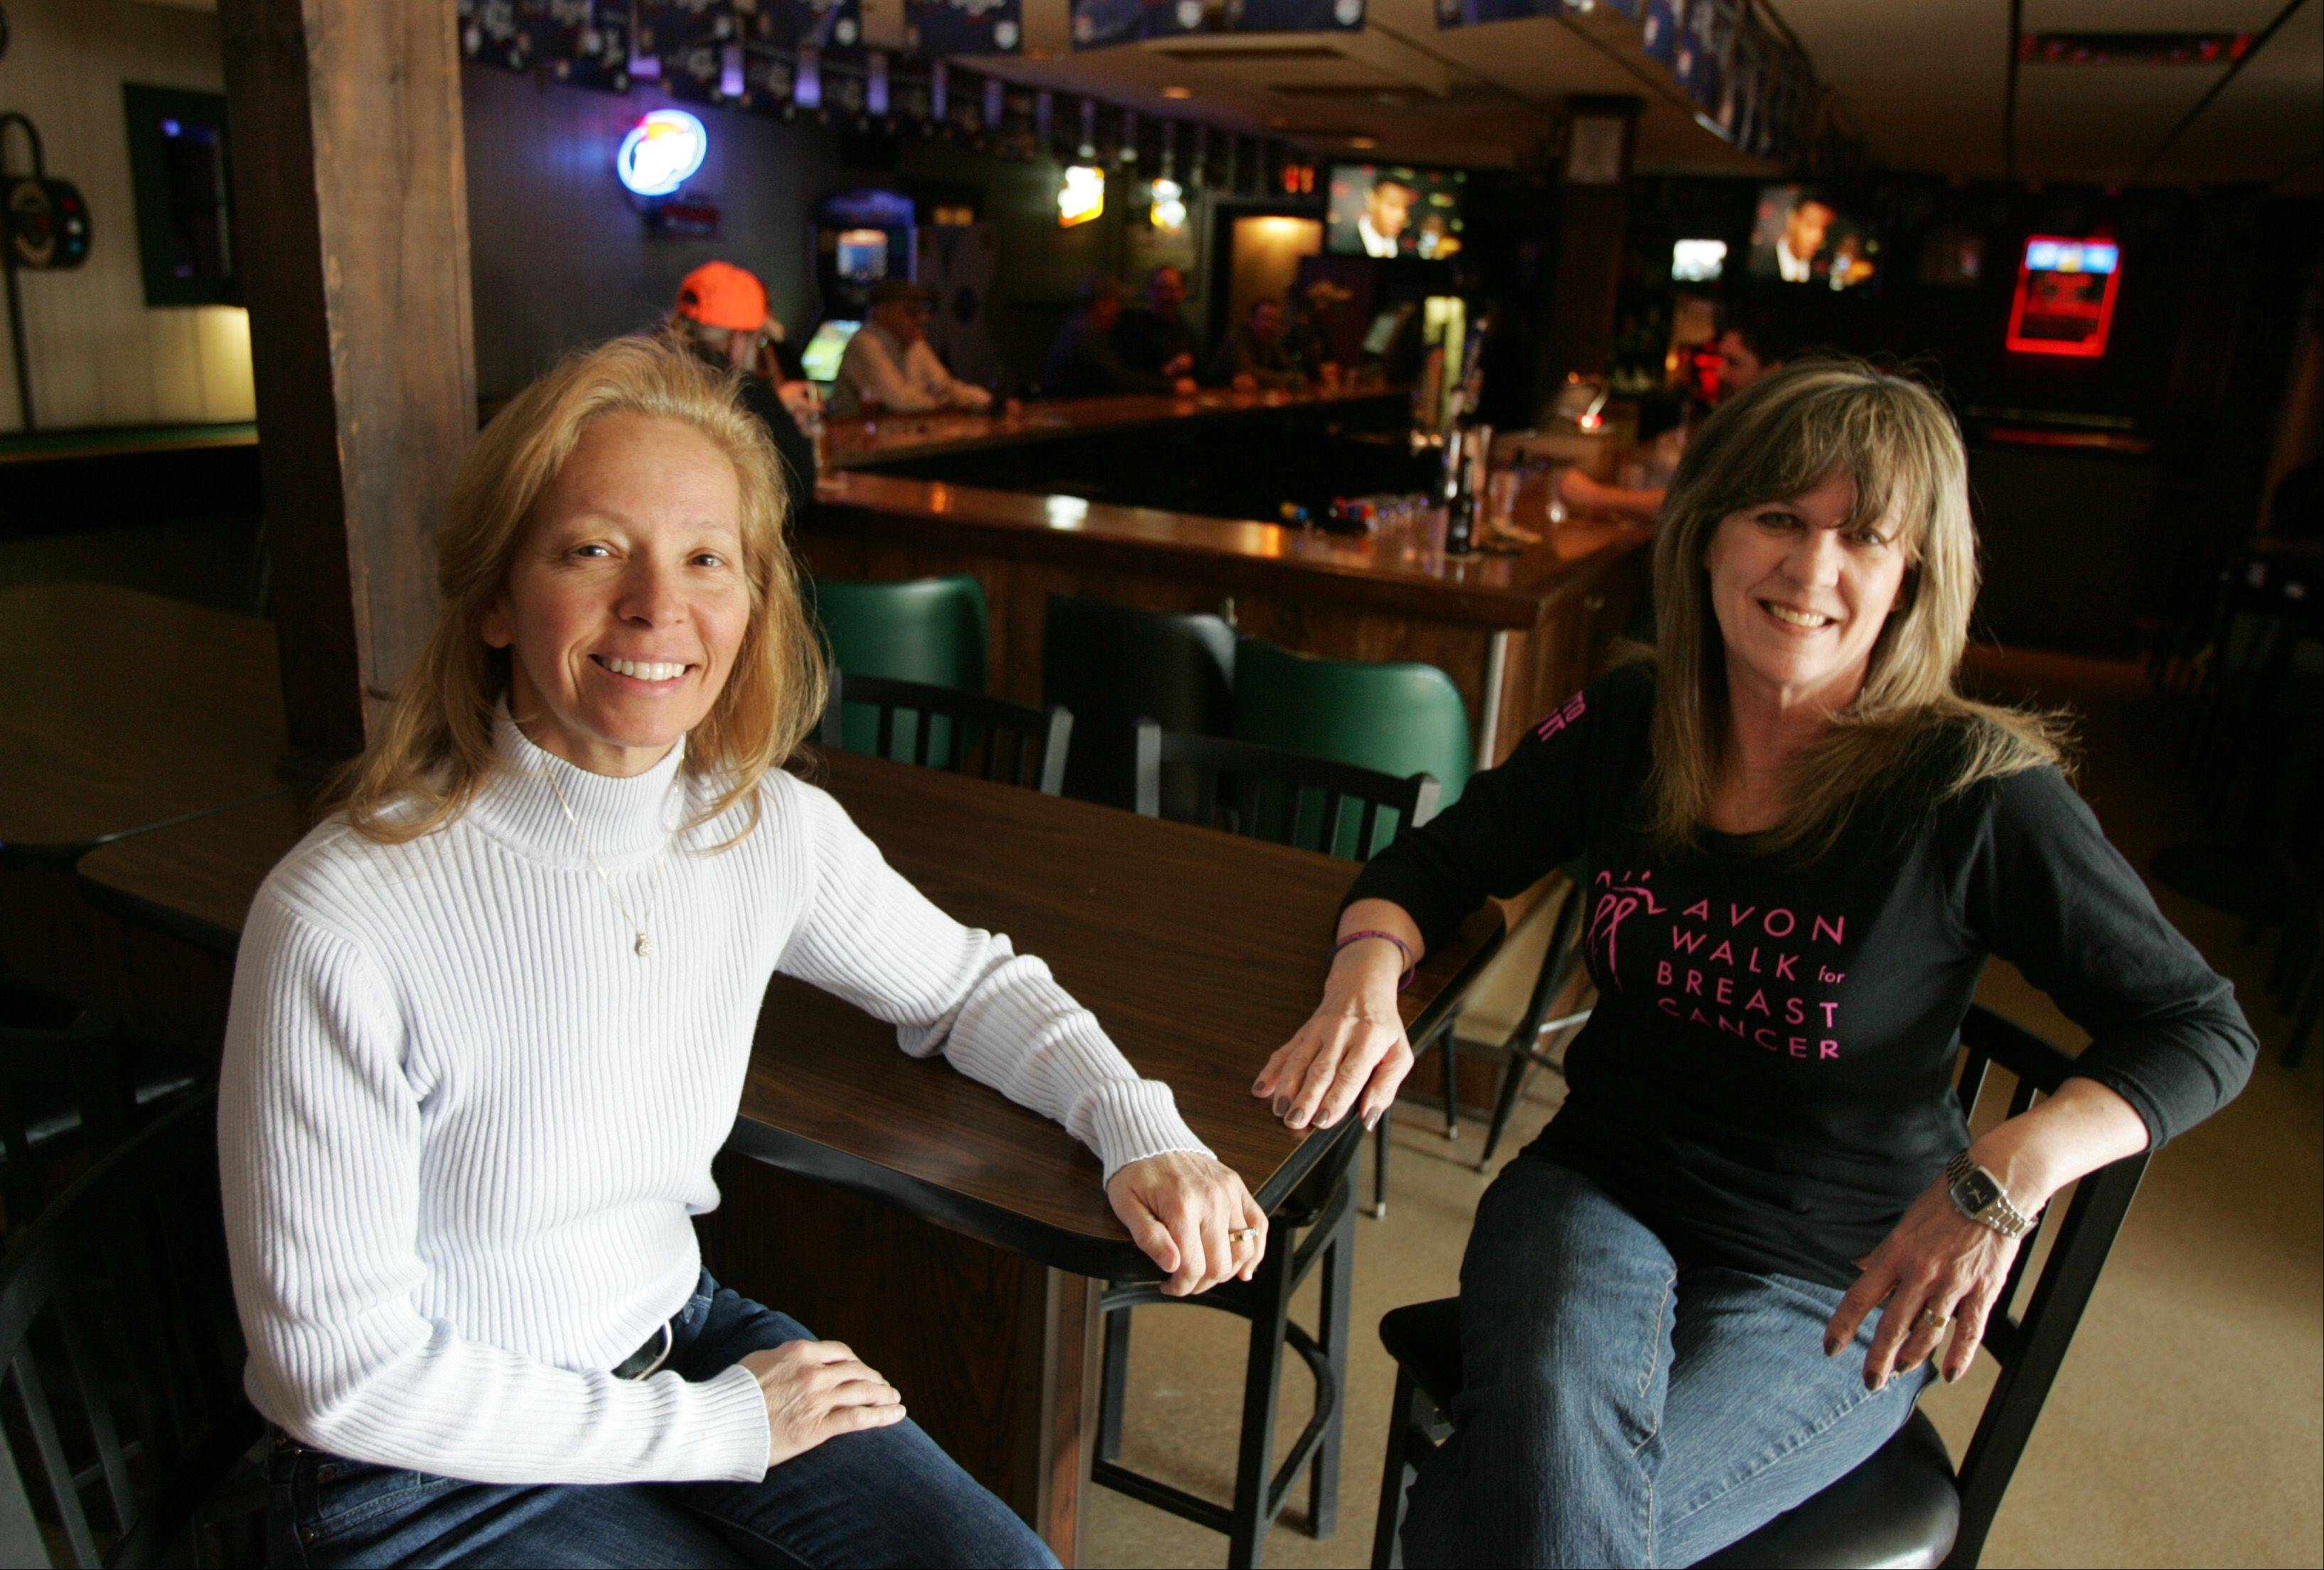 Hoppe's Tavern owner Jill Hoppe, left, has been teaming up with breast cancer walker Nancy Belanger to help raise money by hosting fundraisers for the last seven years at the bar on Elgin's east side.